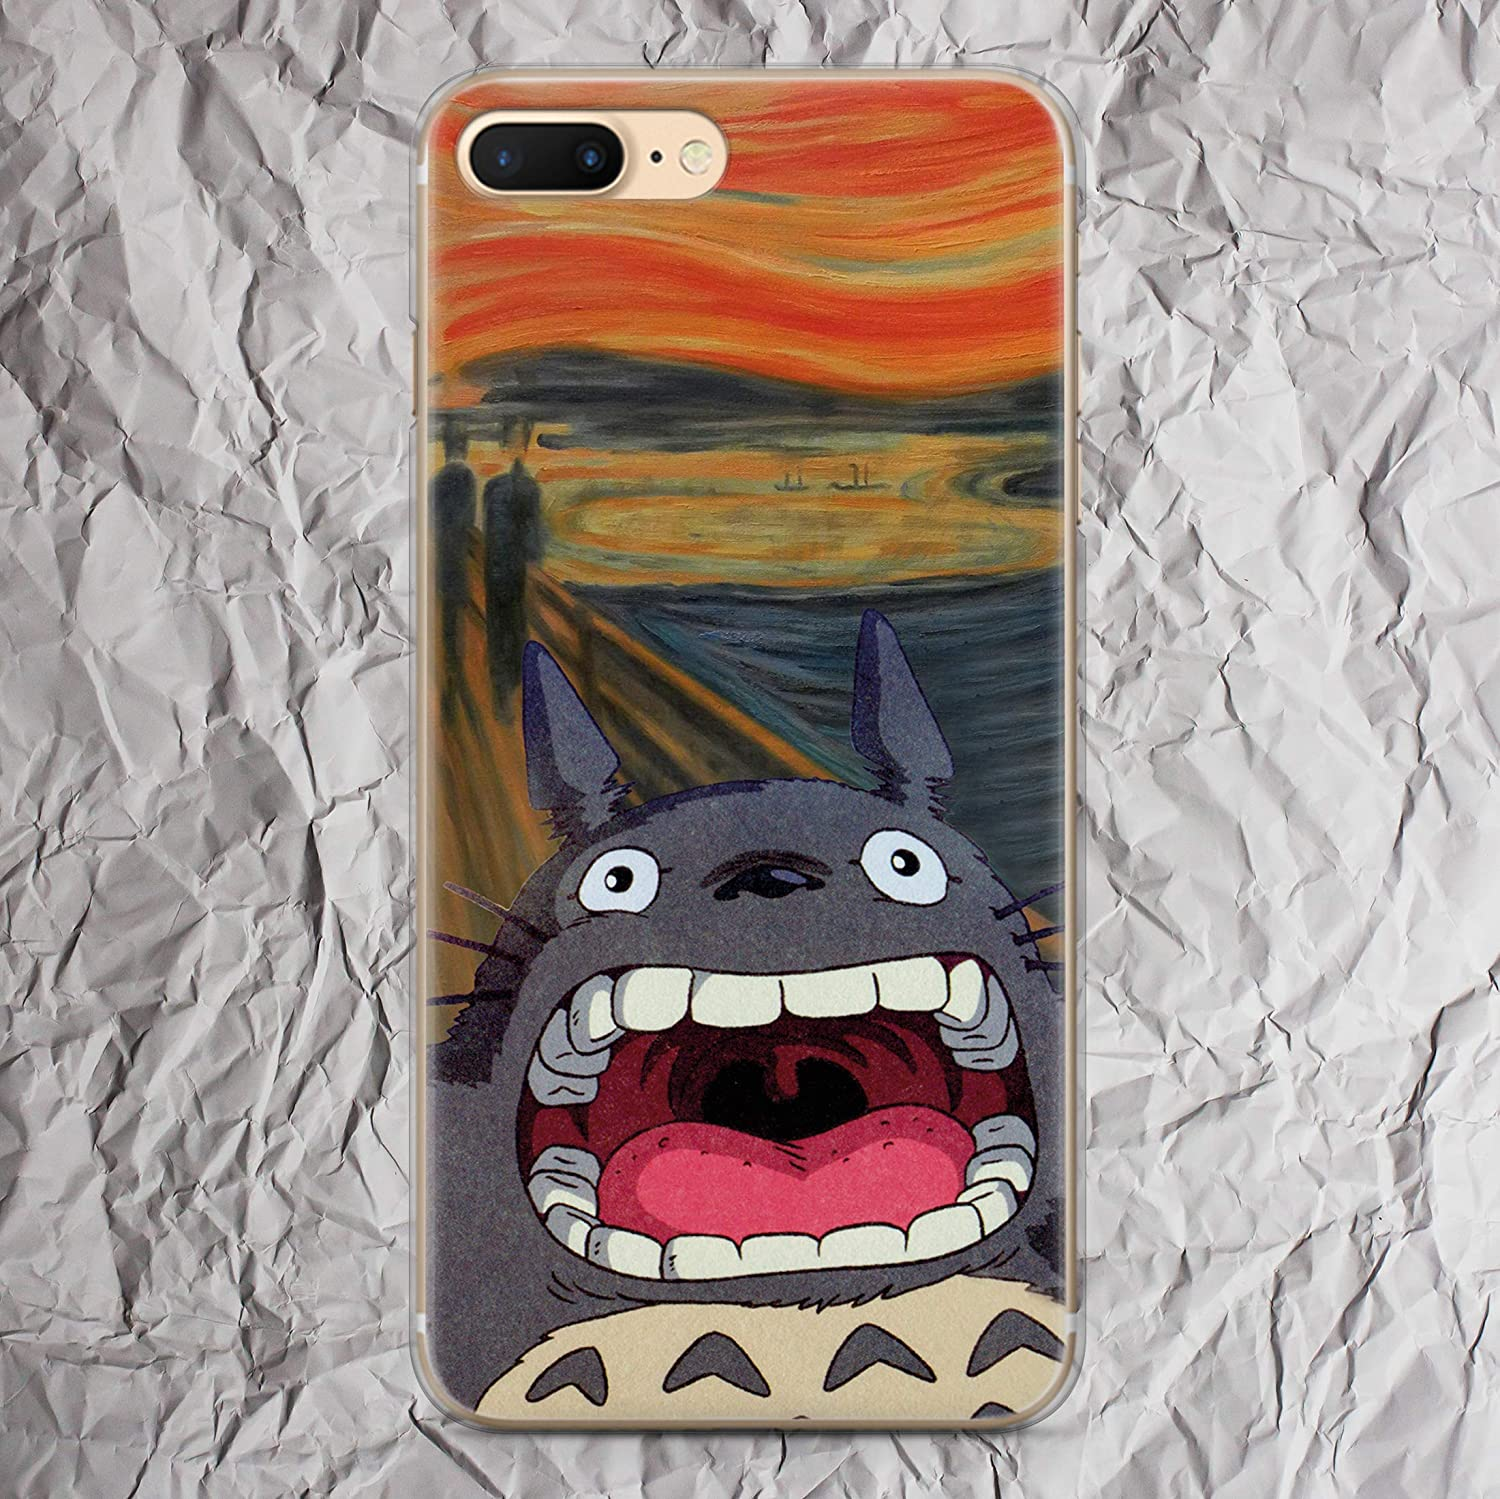 huge selection of e7fec f0407 My Neighbor Totoro Phone Case Anime for iPhone X Xs Max Xr 7 8 6 6s plus 5  5s se 5se 4 4s The Scream Edvard Munch Inspired by Studio Ghibli Collection  ...